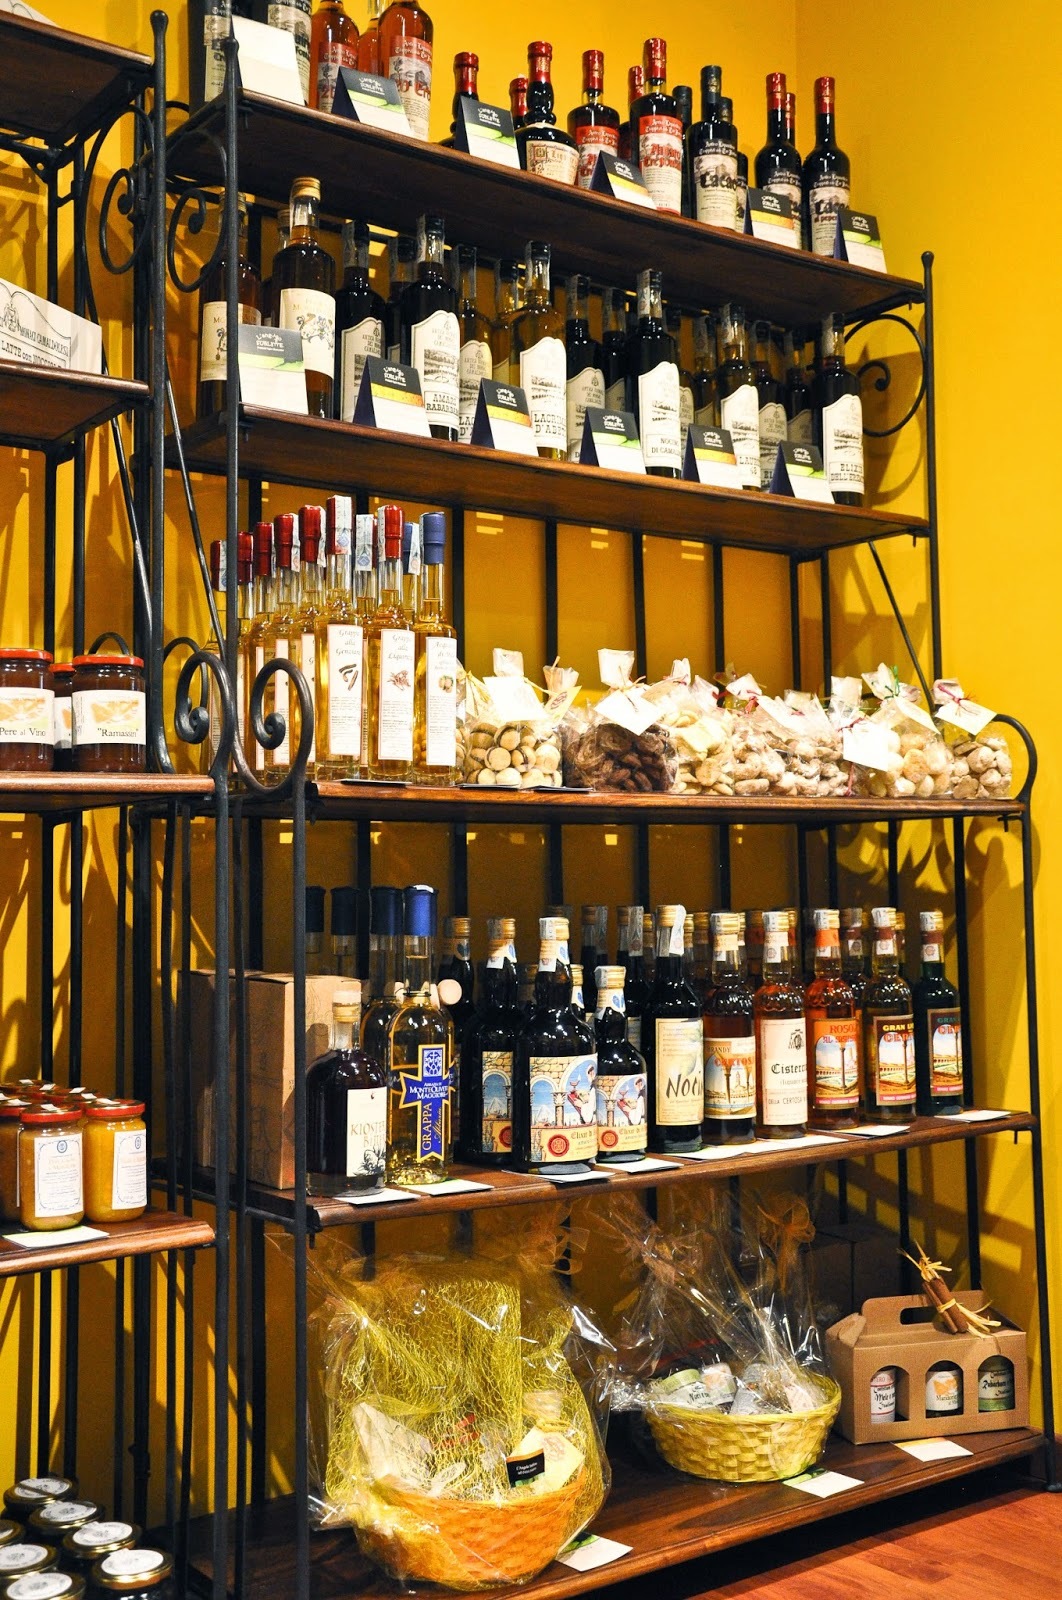 Drinks, sweets and cosmetics sold by the L'Angolo Sublime - a charming shop in Vicenza selling artisan products made in Italian monasteries